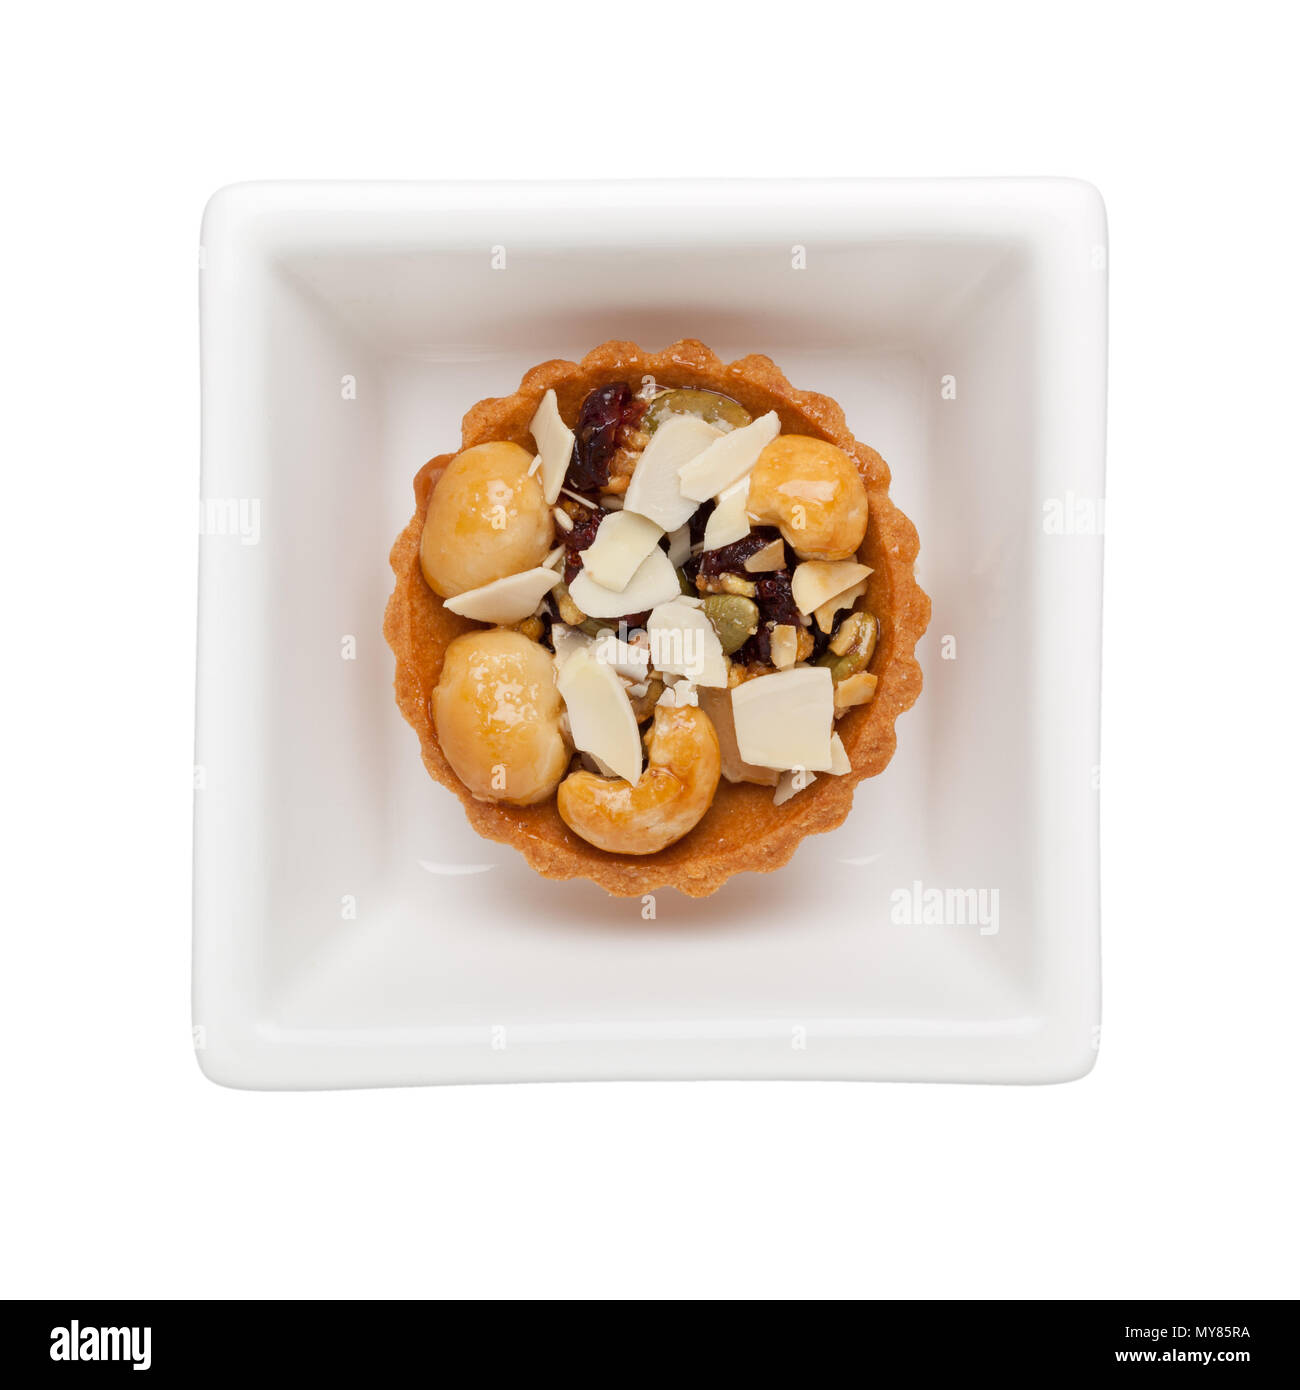 Mixed nuts tart in a square bowl isolated on white background - Stock Image